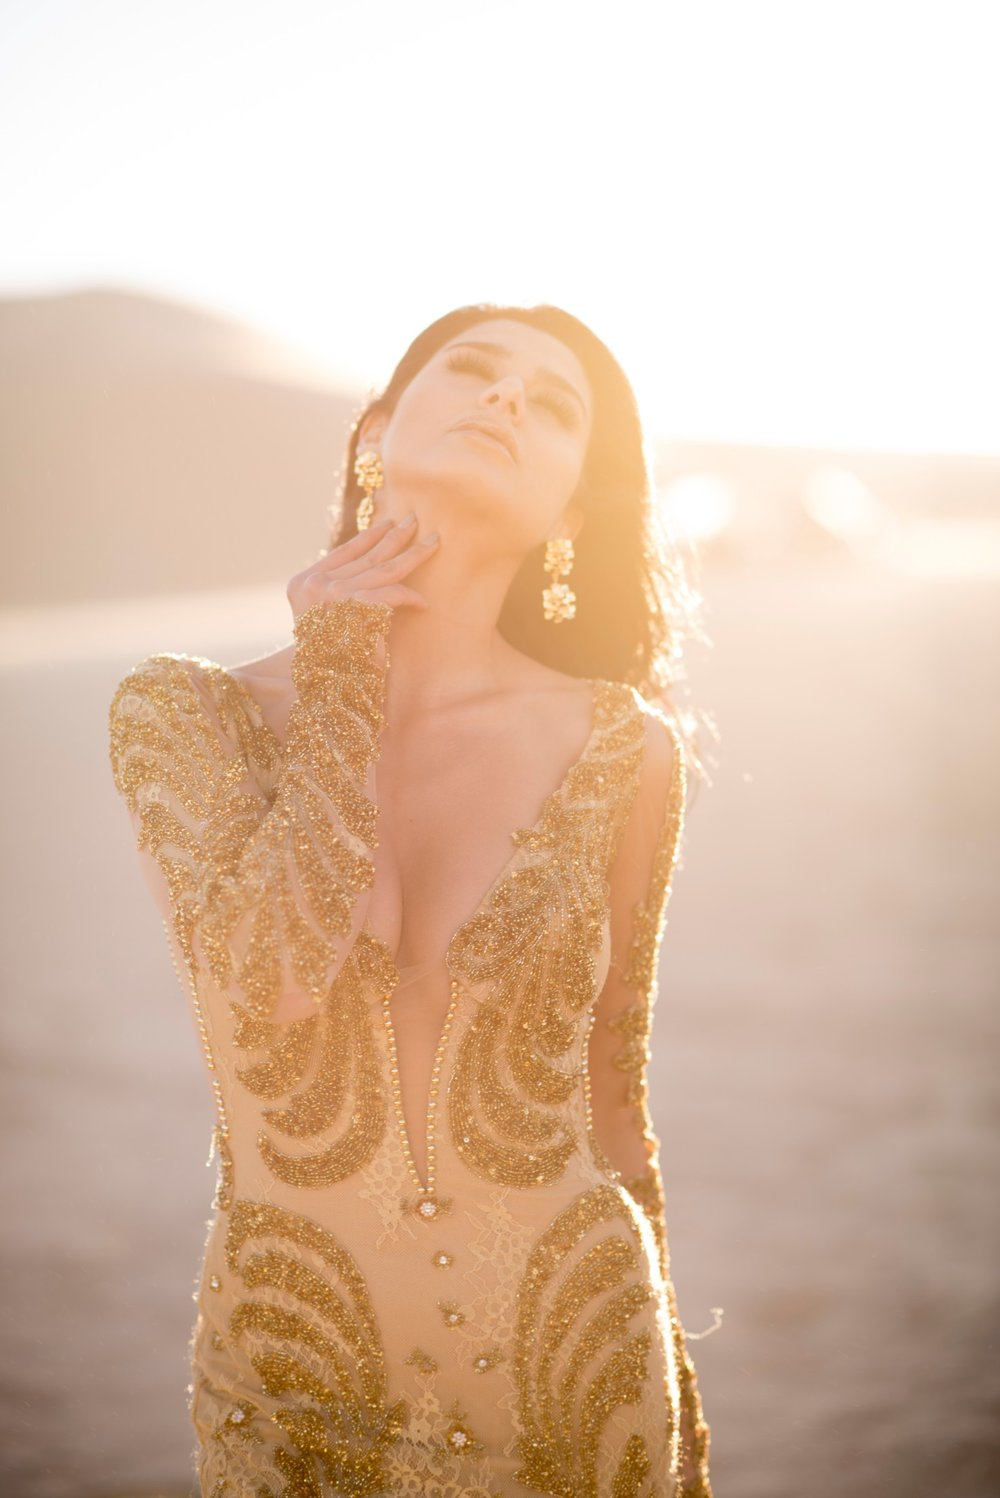 076_KLK_Galia Lahav_Desert Bridal Shoot.jpg